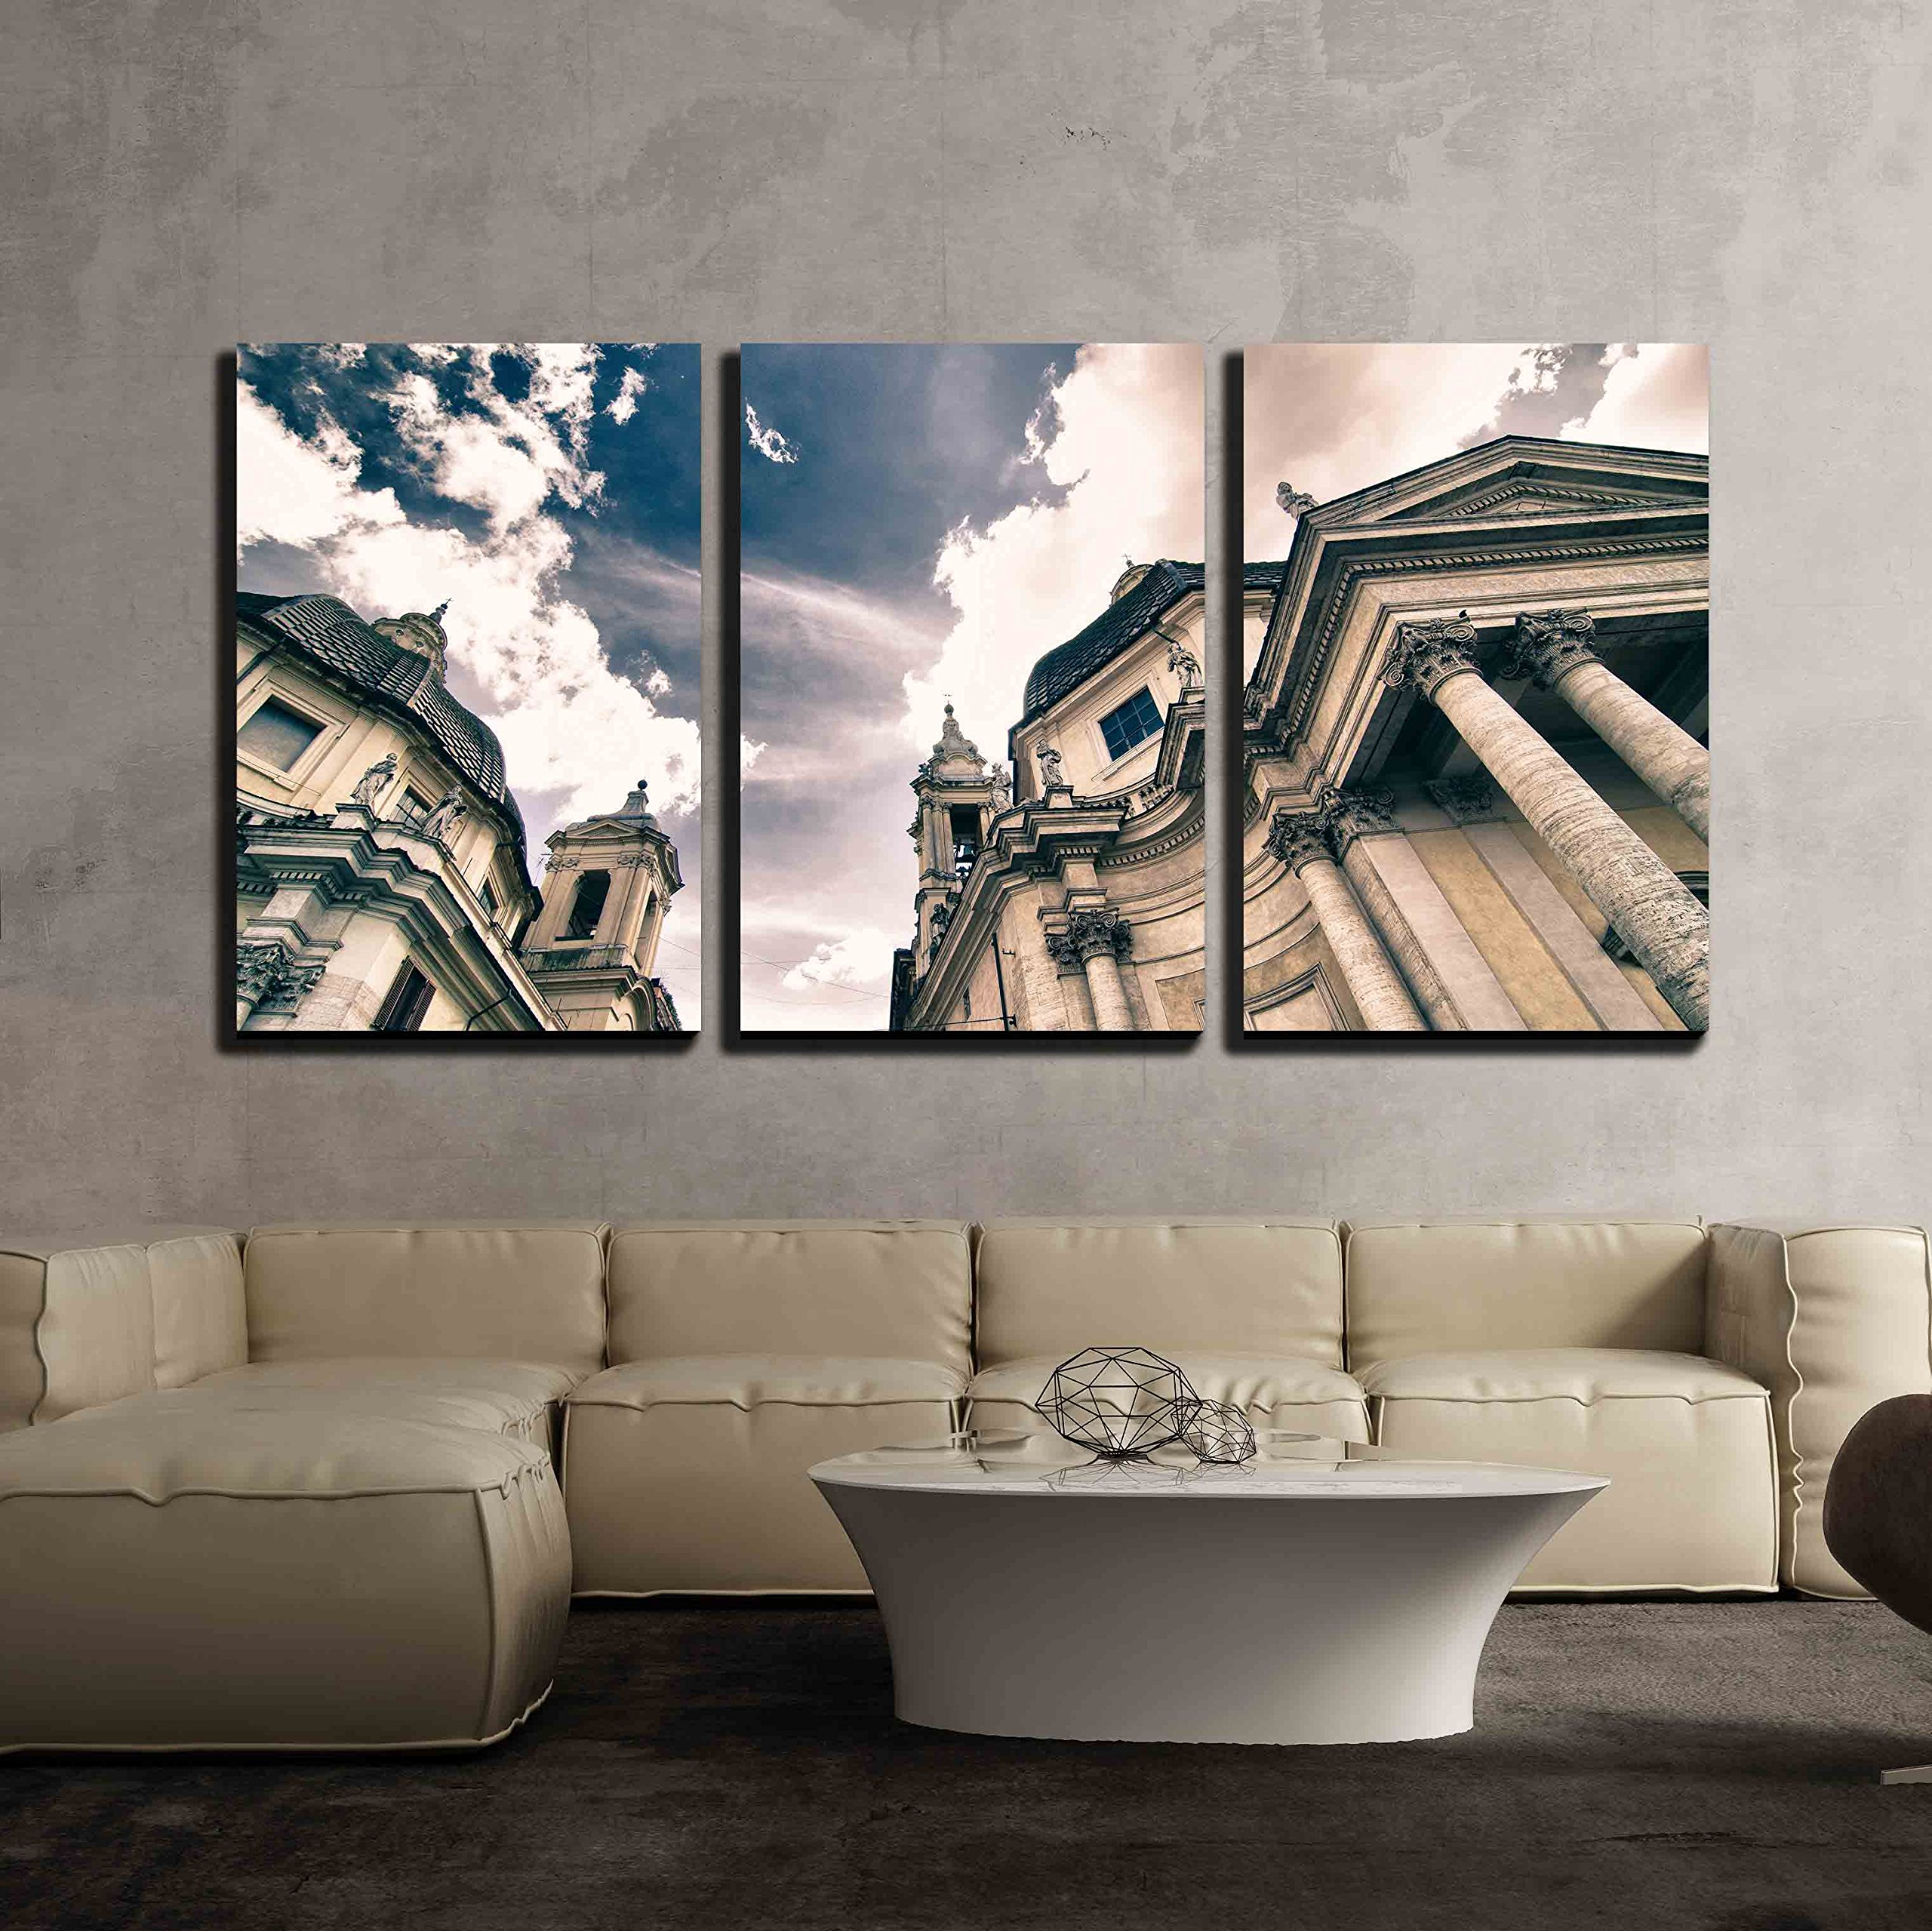 "wall26 - 3 Piece Canvas Wall Art - Piazza Del Popolo in Rome, Italy - Modern Home Decor Stretched and Framed Ready to Hang - 24""x36""x3 Panels"